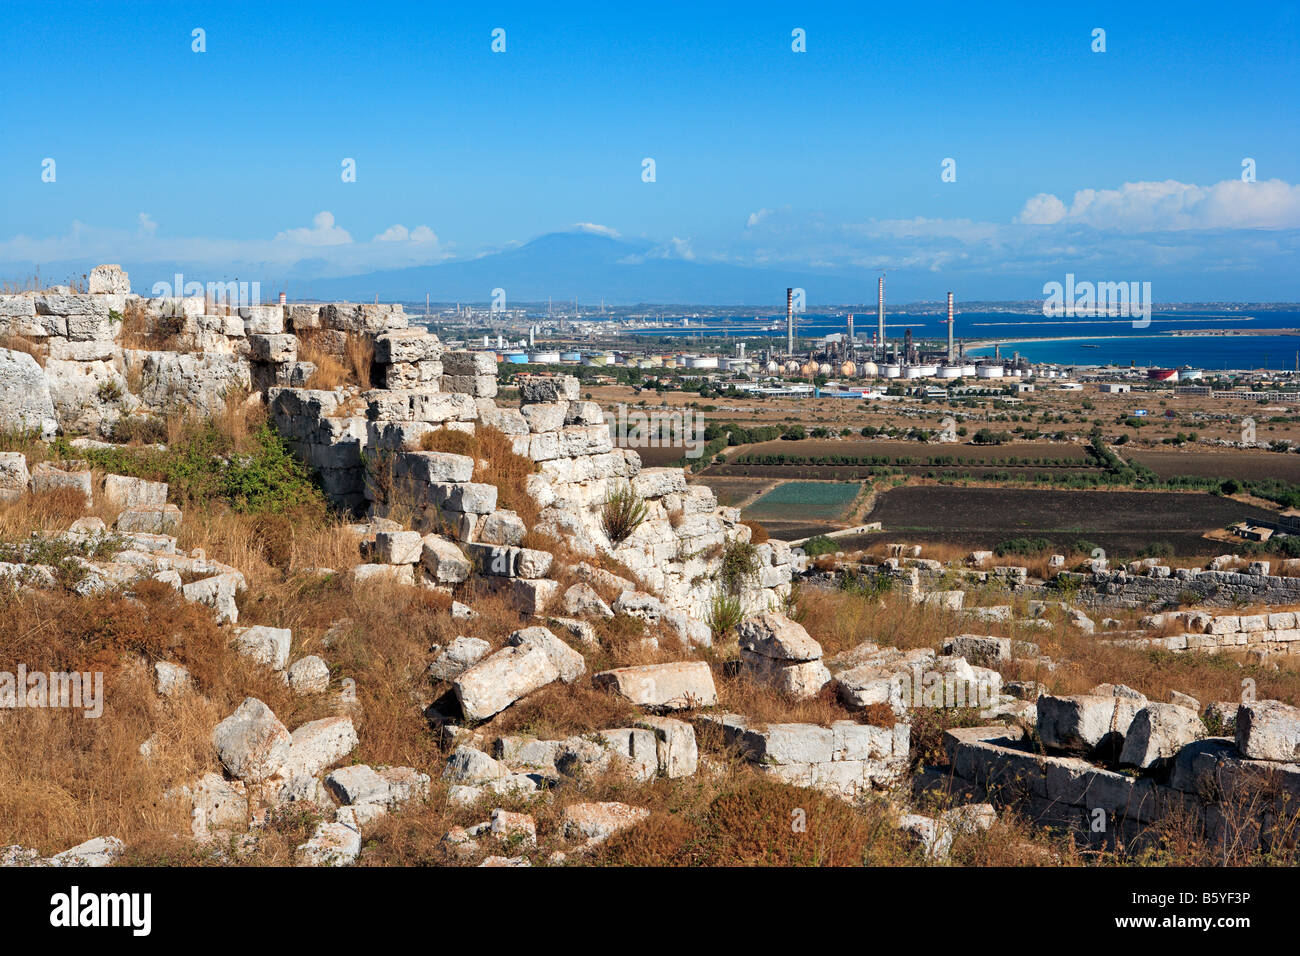 Bastion of Eurialo, oil refineries, Mount Etna and Golfo di Augusta, Sicily - Stock Image